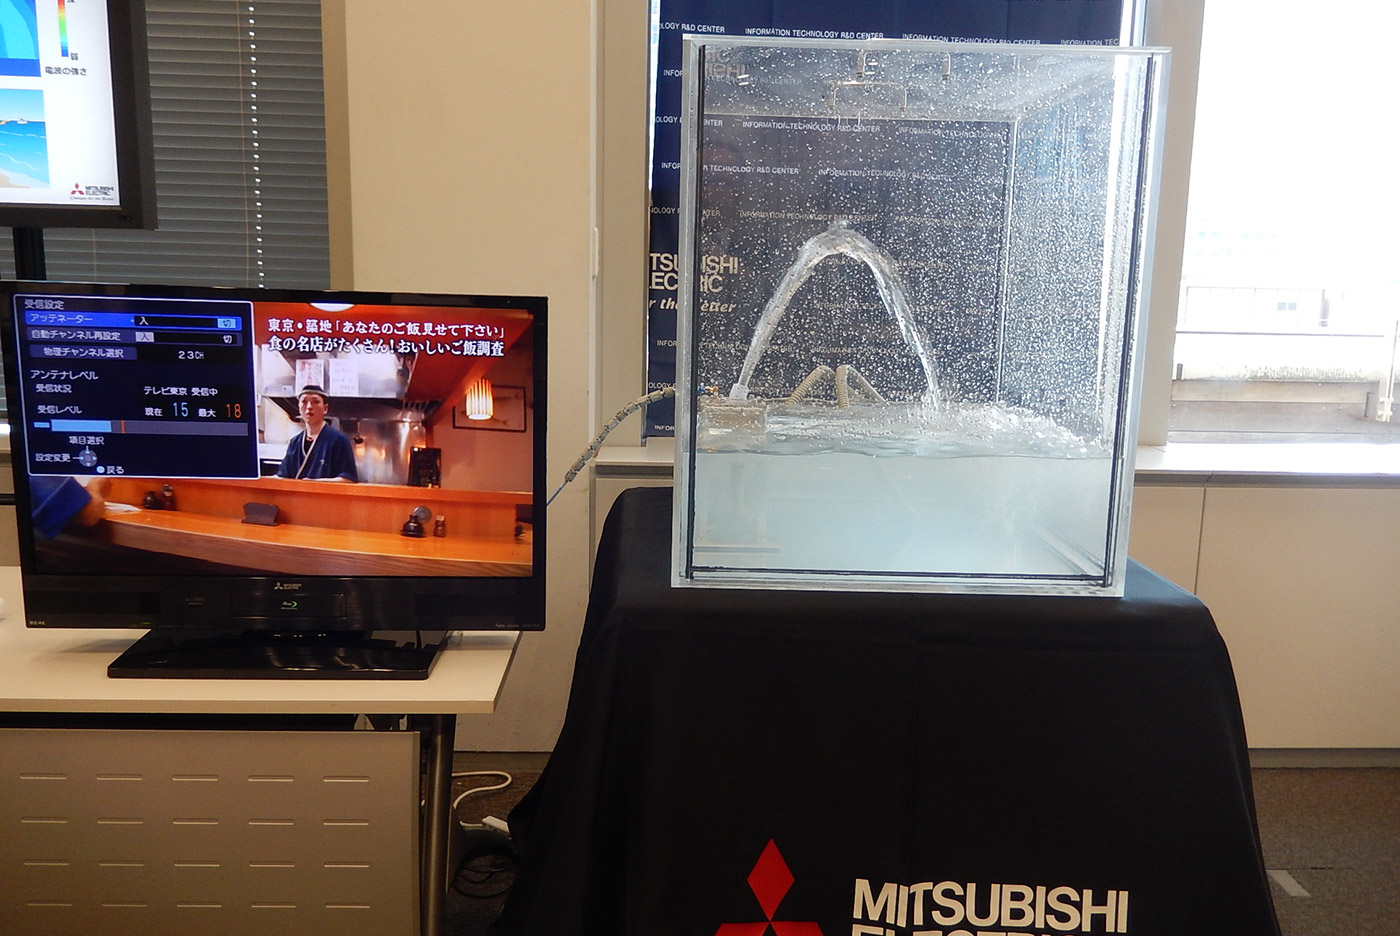 Mitsubishi's SeaAerial is an antenna made of seawater